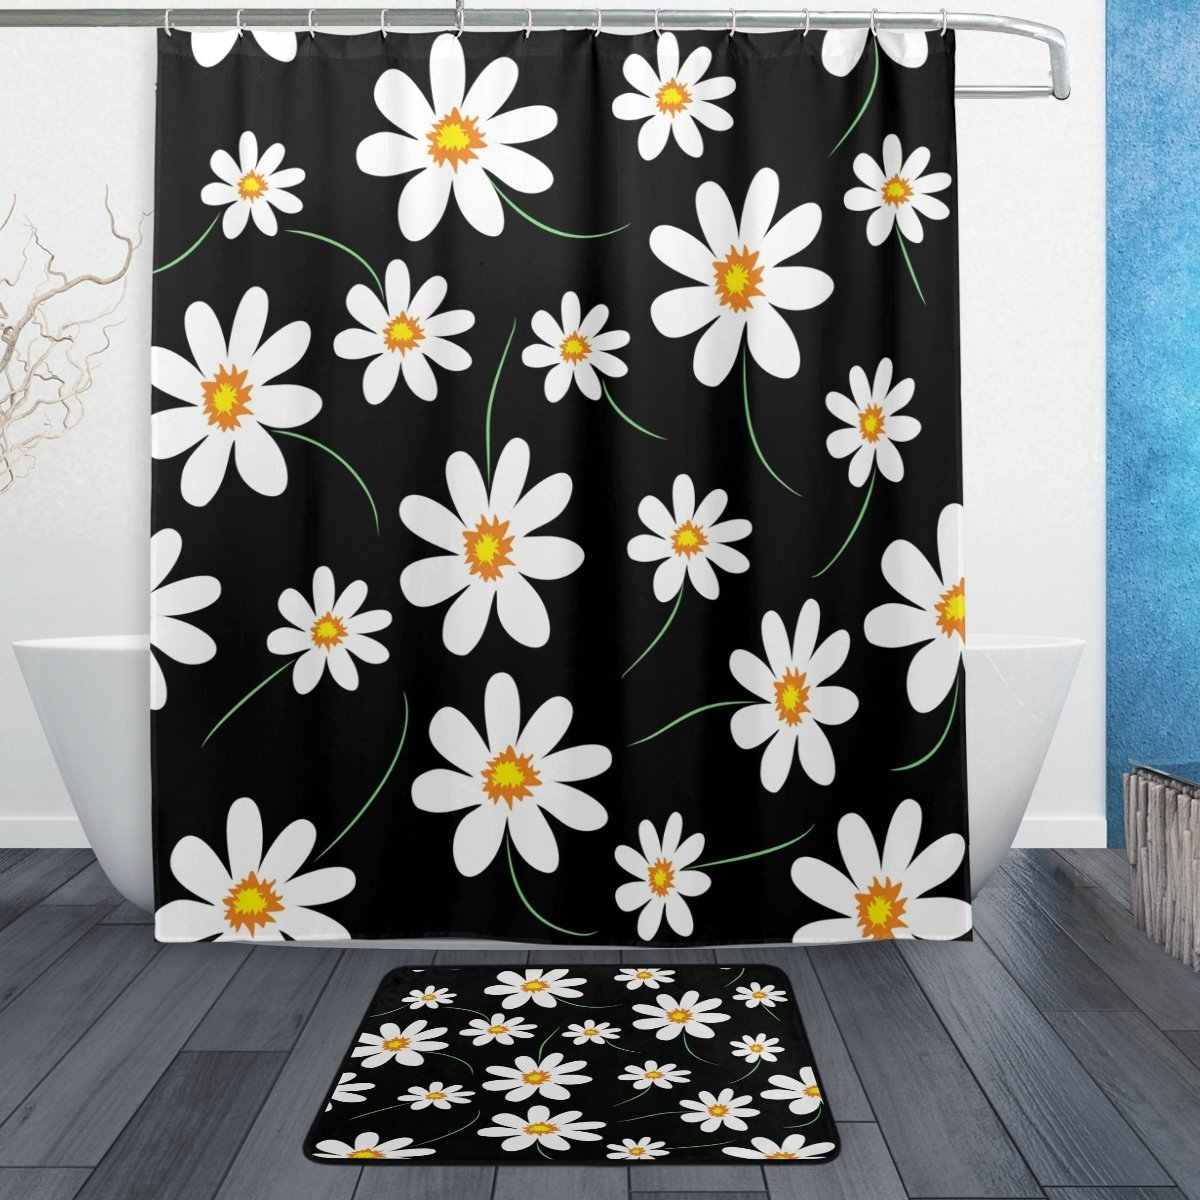 Cute Abstract Daisy Waterproof Polyester Fabric Shower Curtain with Hooks Doormat Bath Bathroom Home Decor